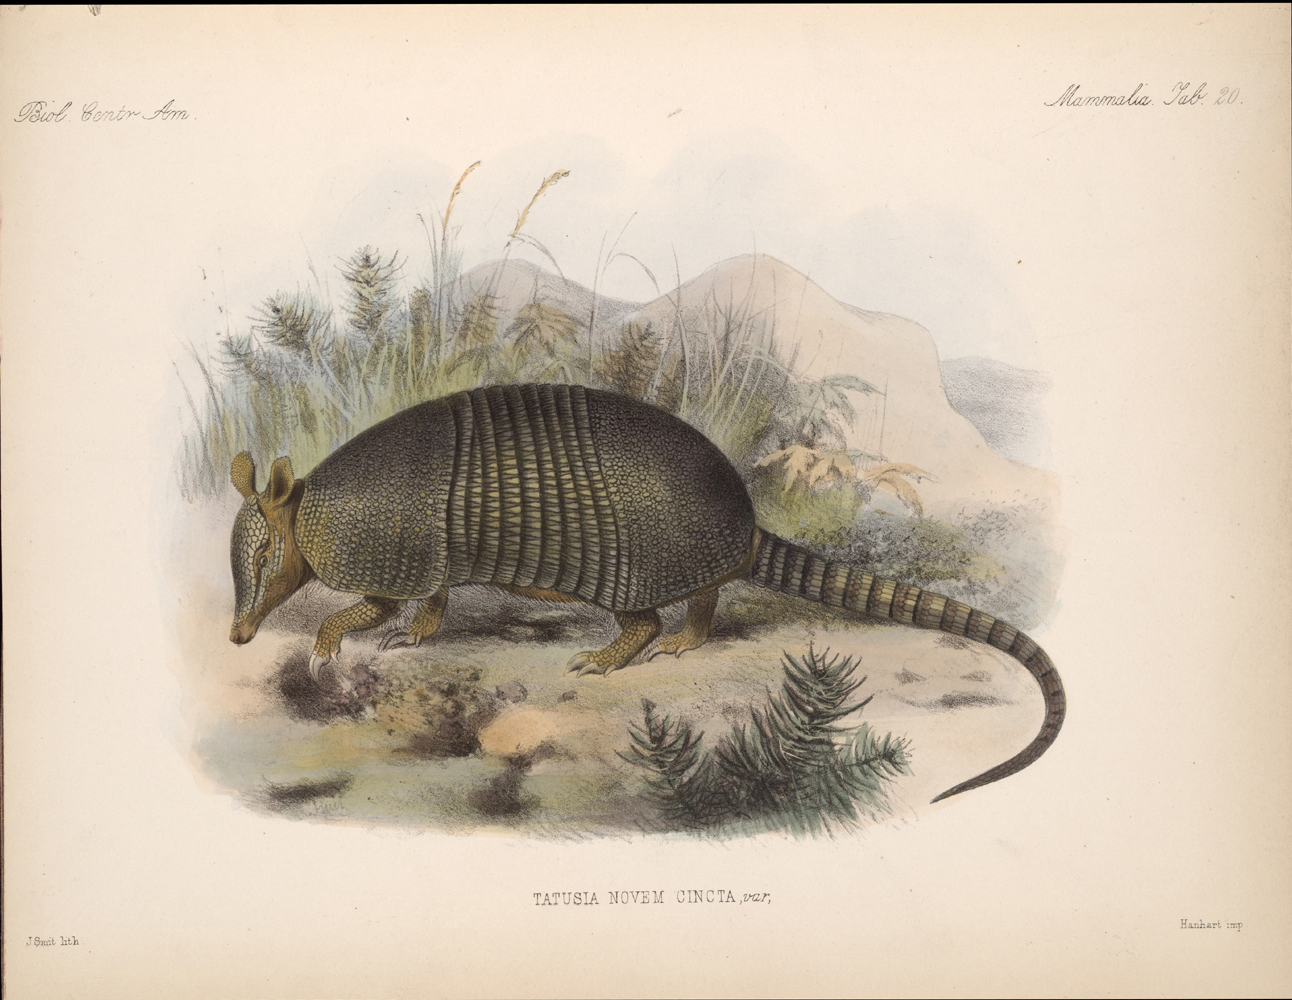 Armadillo,  Image number:bca_02_00_00_287